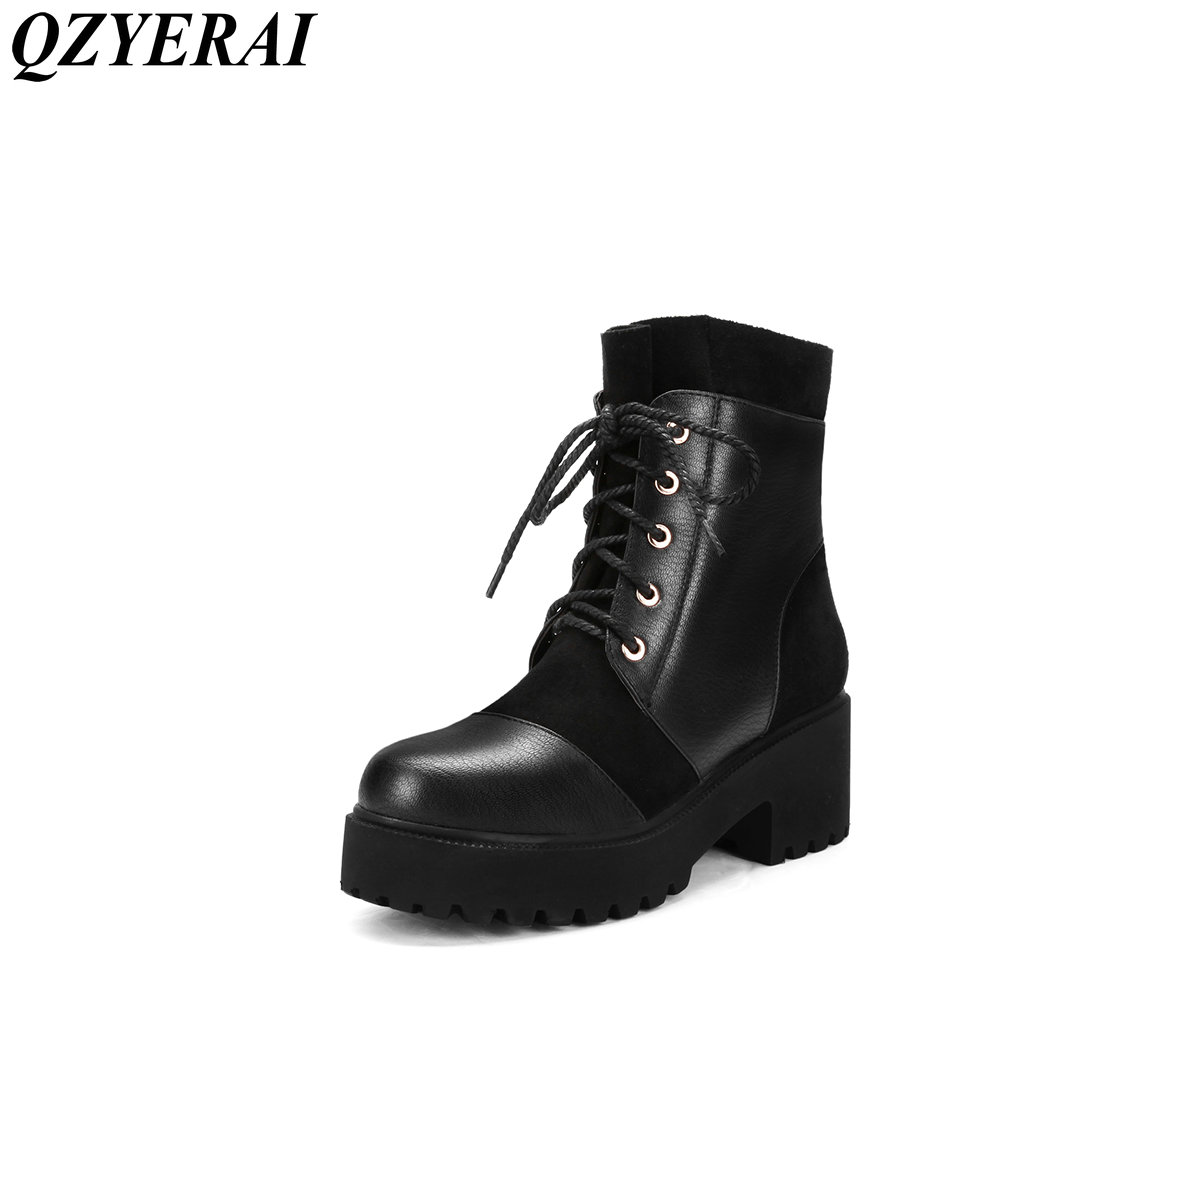 QZYERAI font b Women b font font b shoes b font new real leather lady Martin